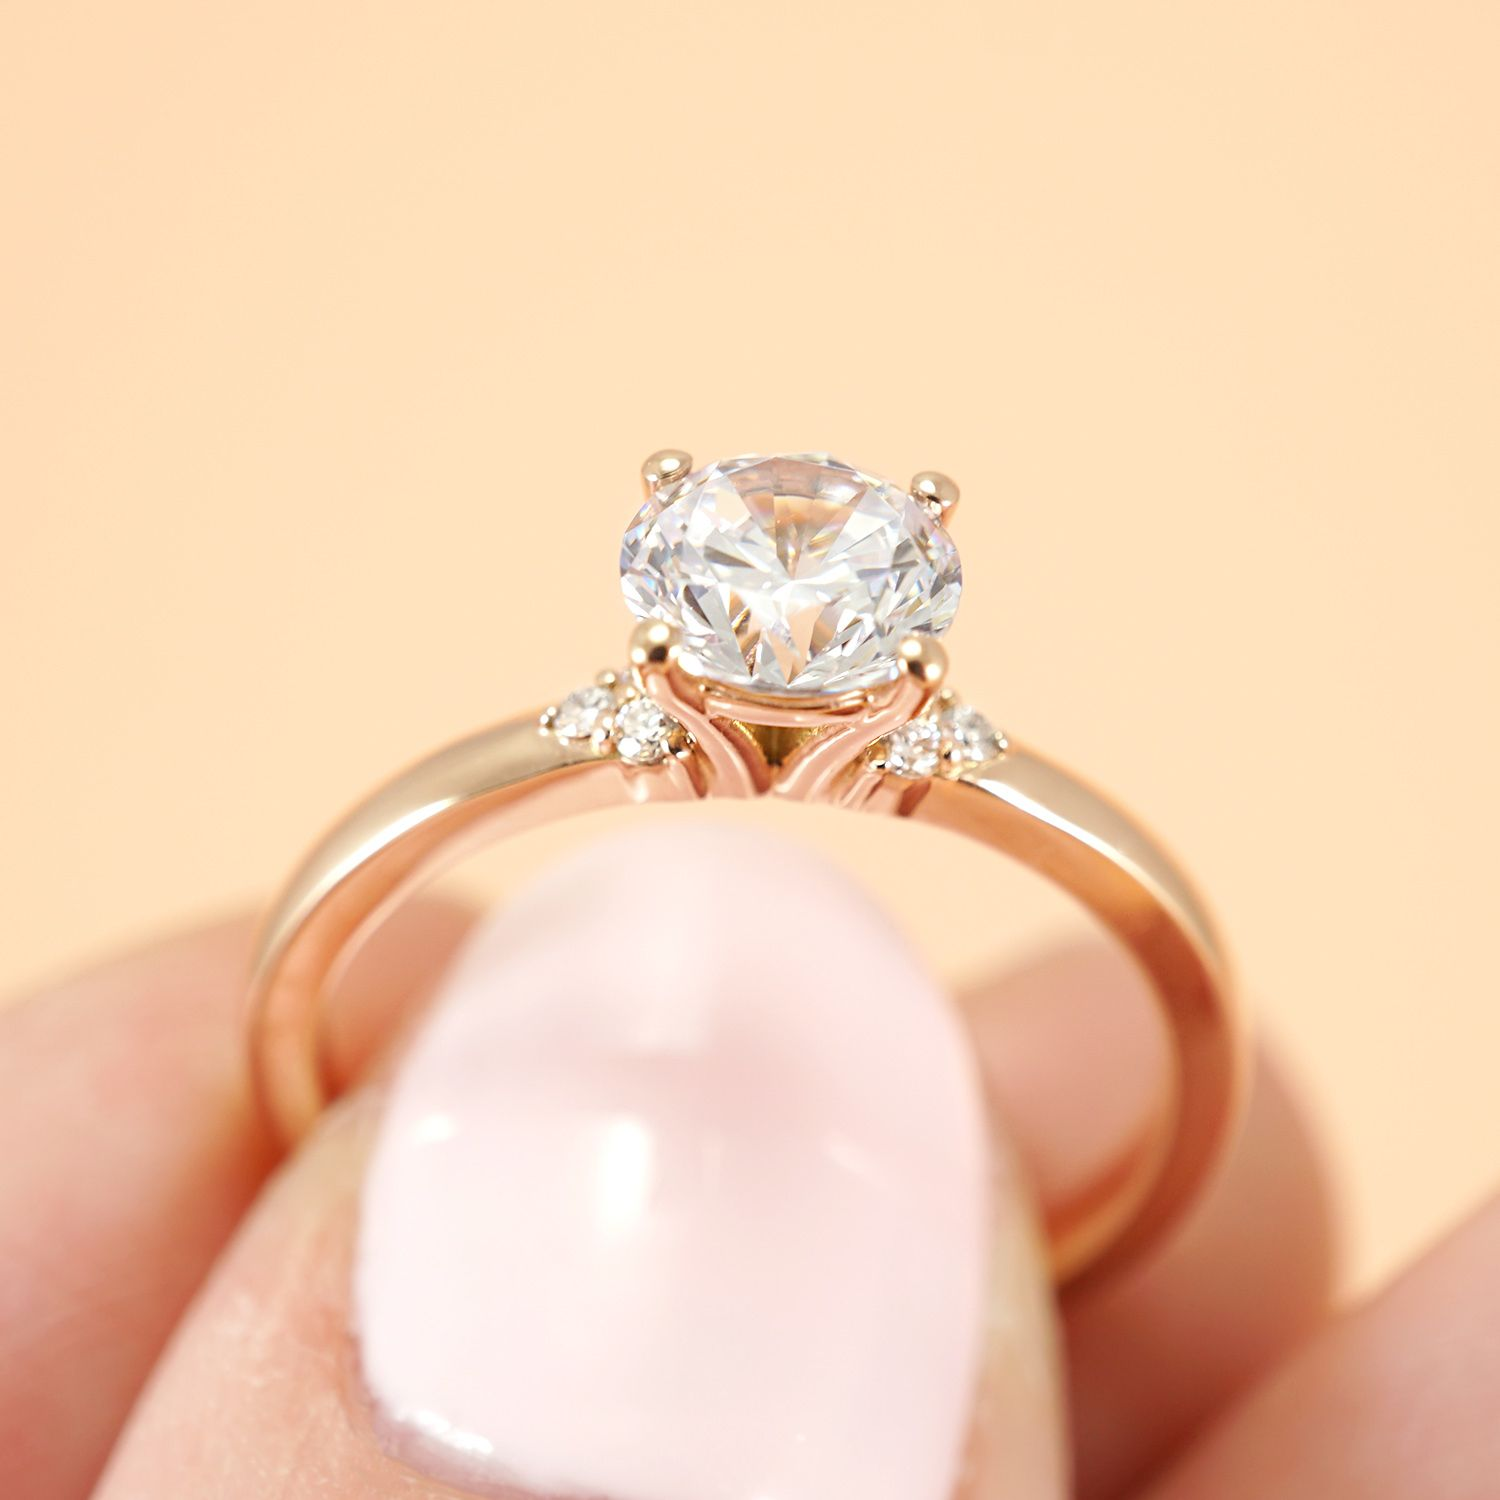 Minimalist Diamond Engagement Ring 104654 Seattle Bellevue Joseph Jewelry In 2020 Small Simple Engagement Rings Round Diamond Engagement Rings Rose Gold Diamond Ring Engagement